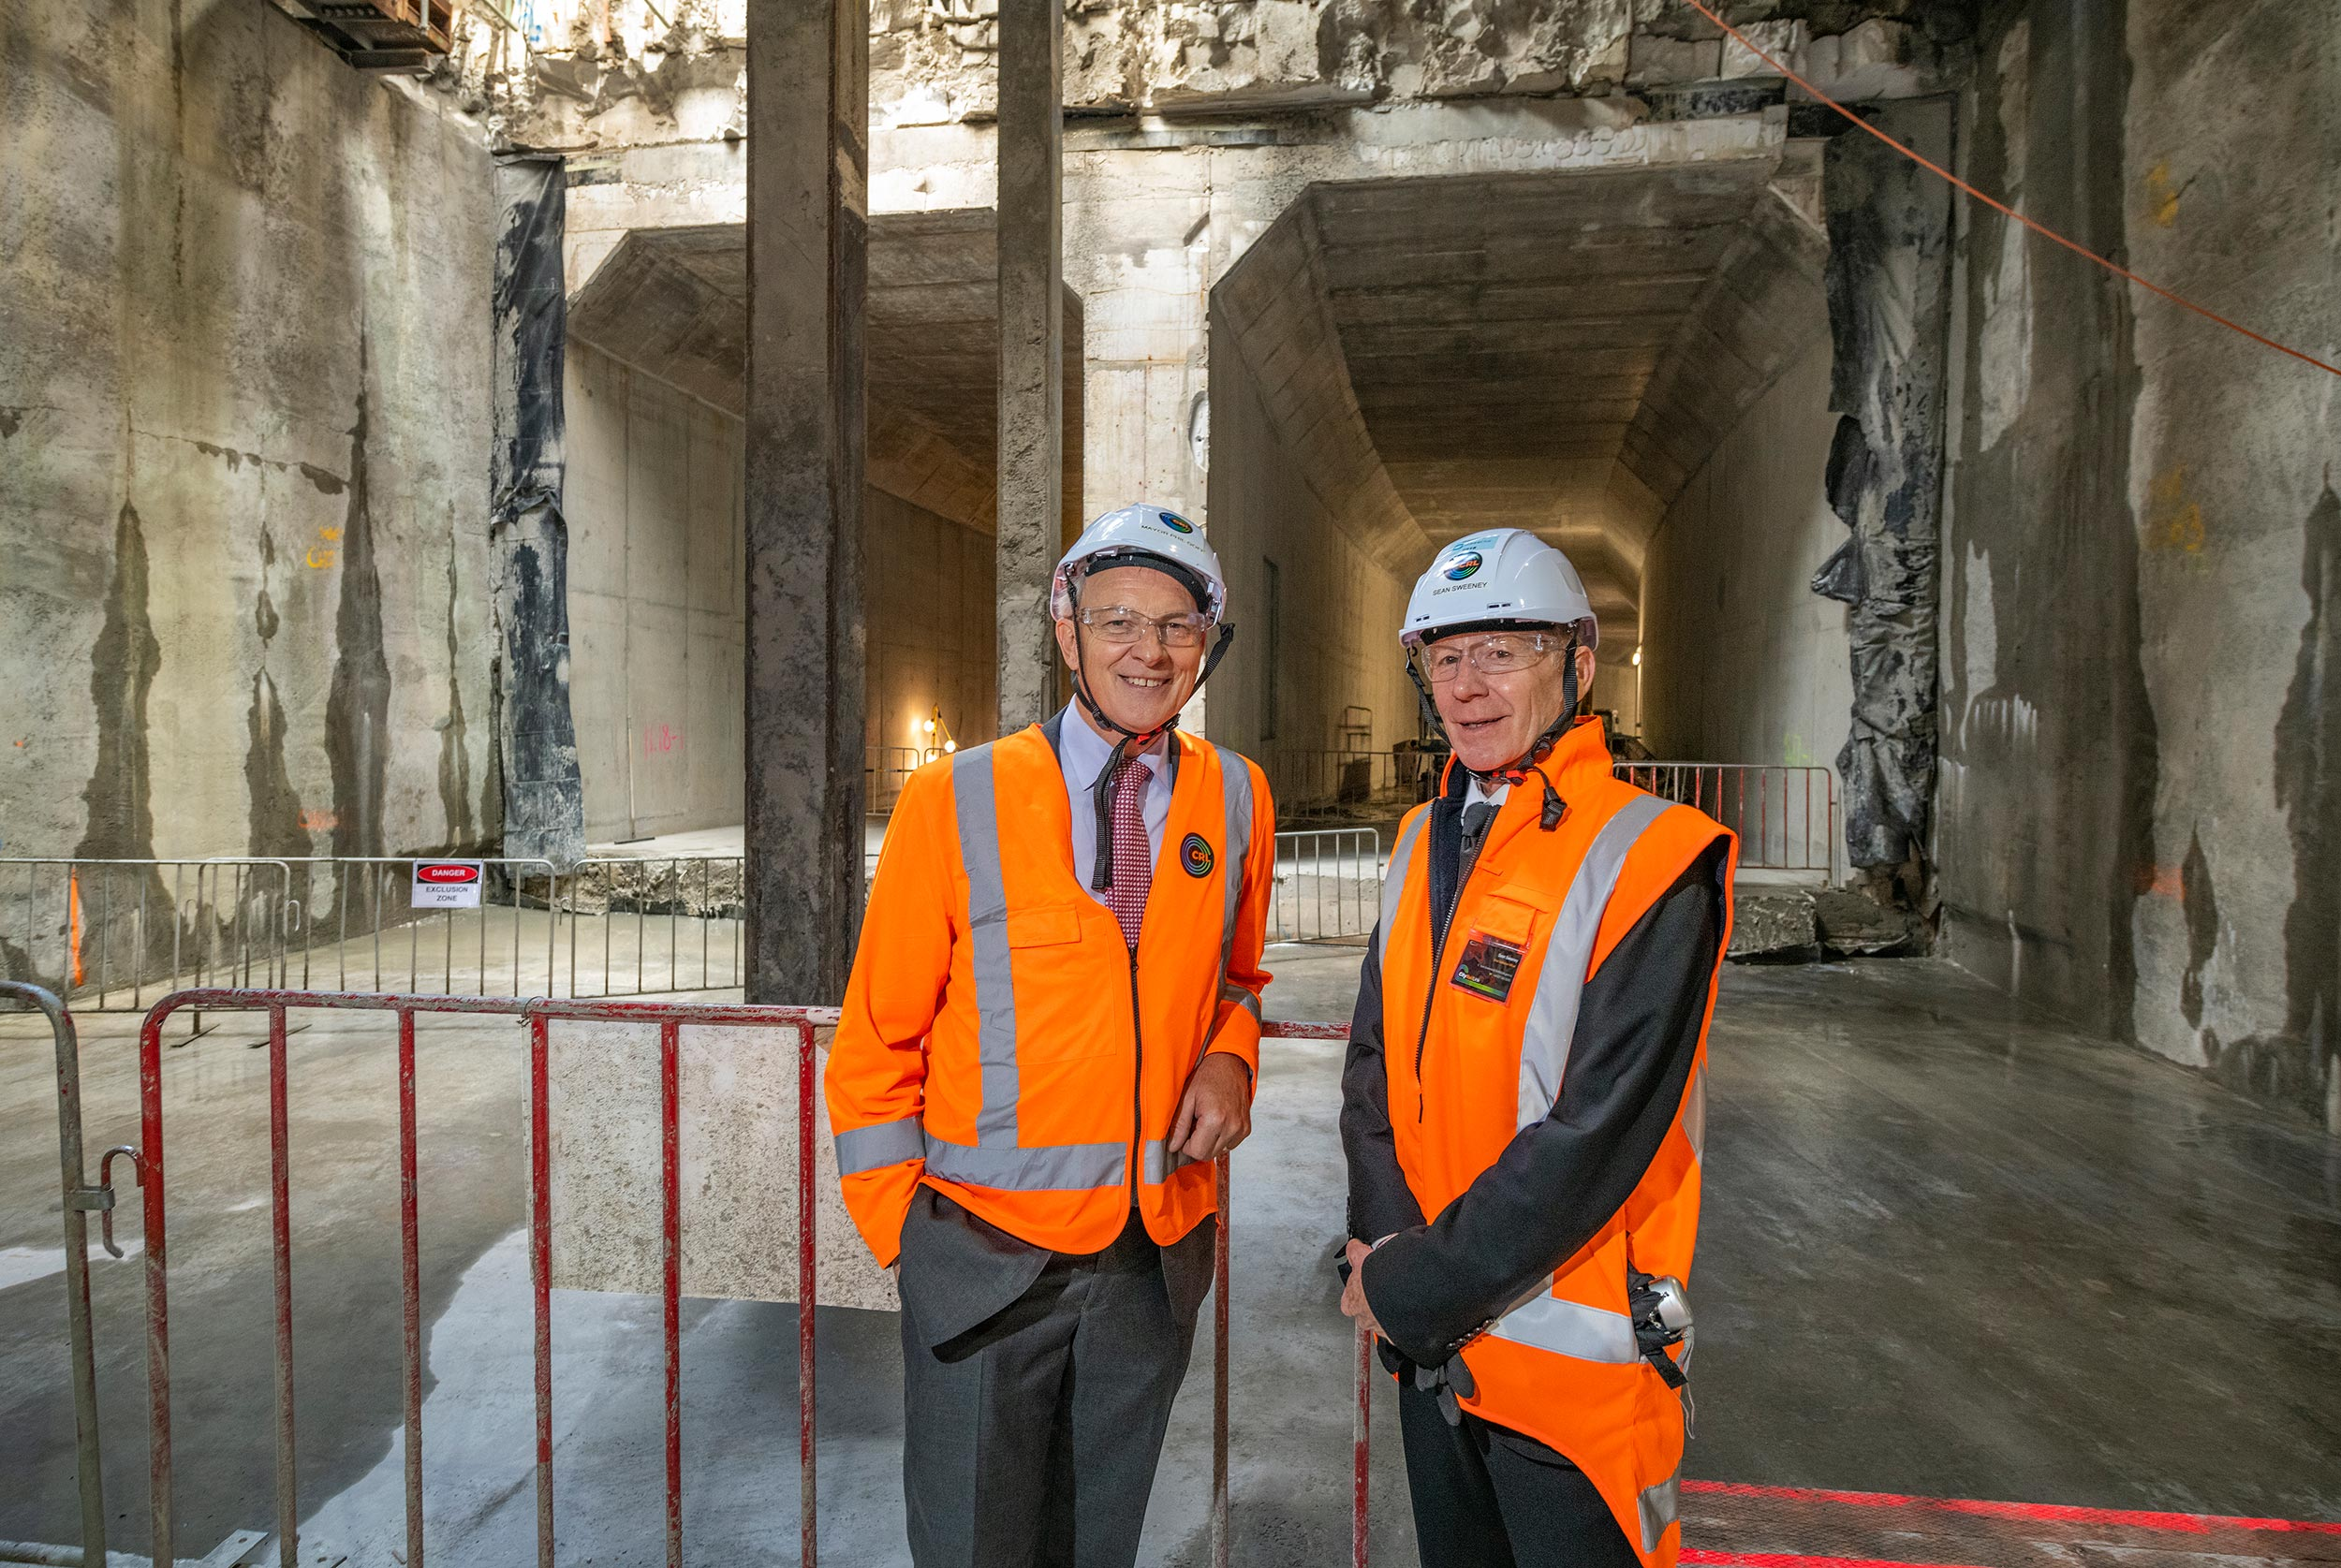 Auckland Mayor Phil Goff and CRL CEO Dr Sean Sweeney at the CRL milestone breakthrough to the Commercial Bay development site from the Albert Street trench tunnels – in downtown Auckland. 5 December 2018.